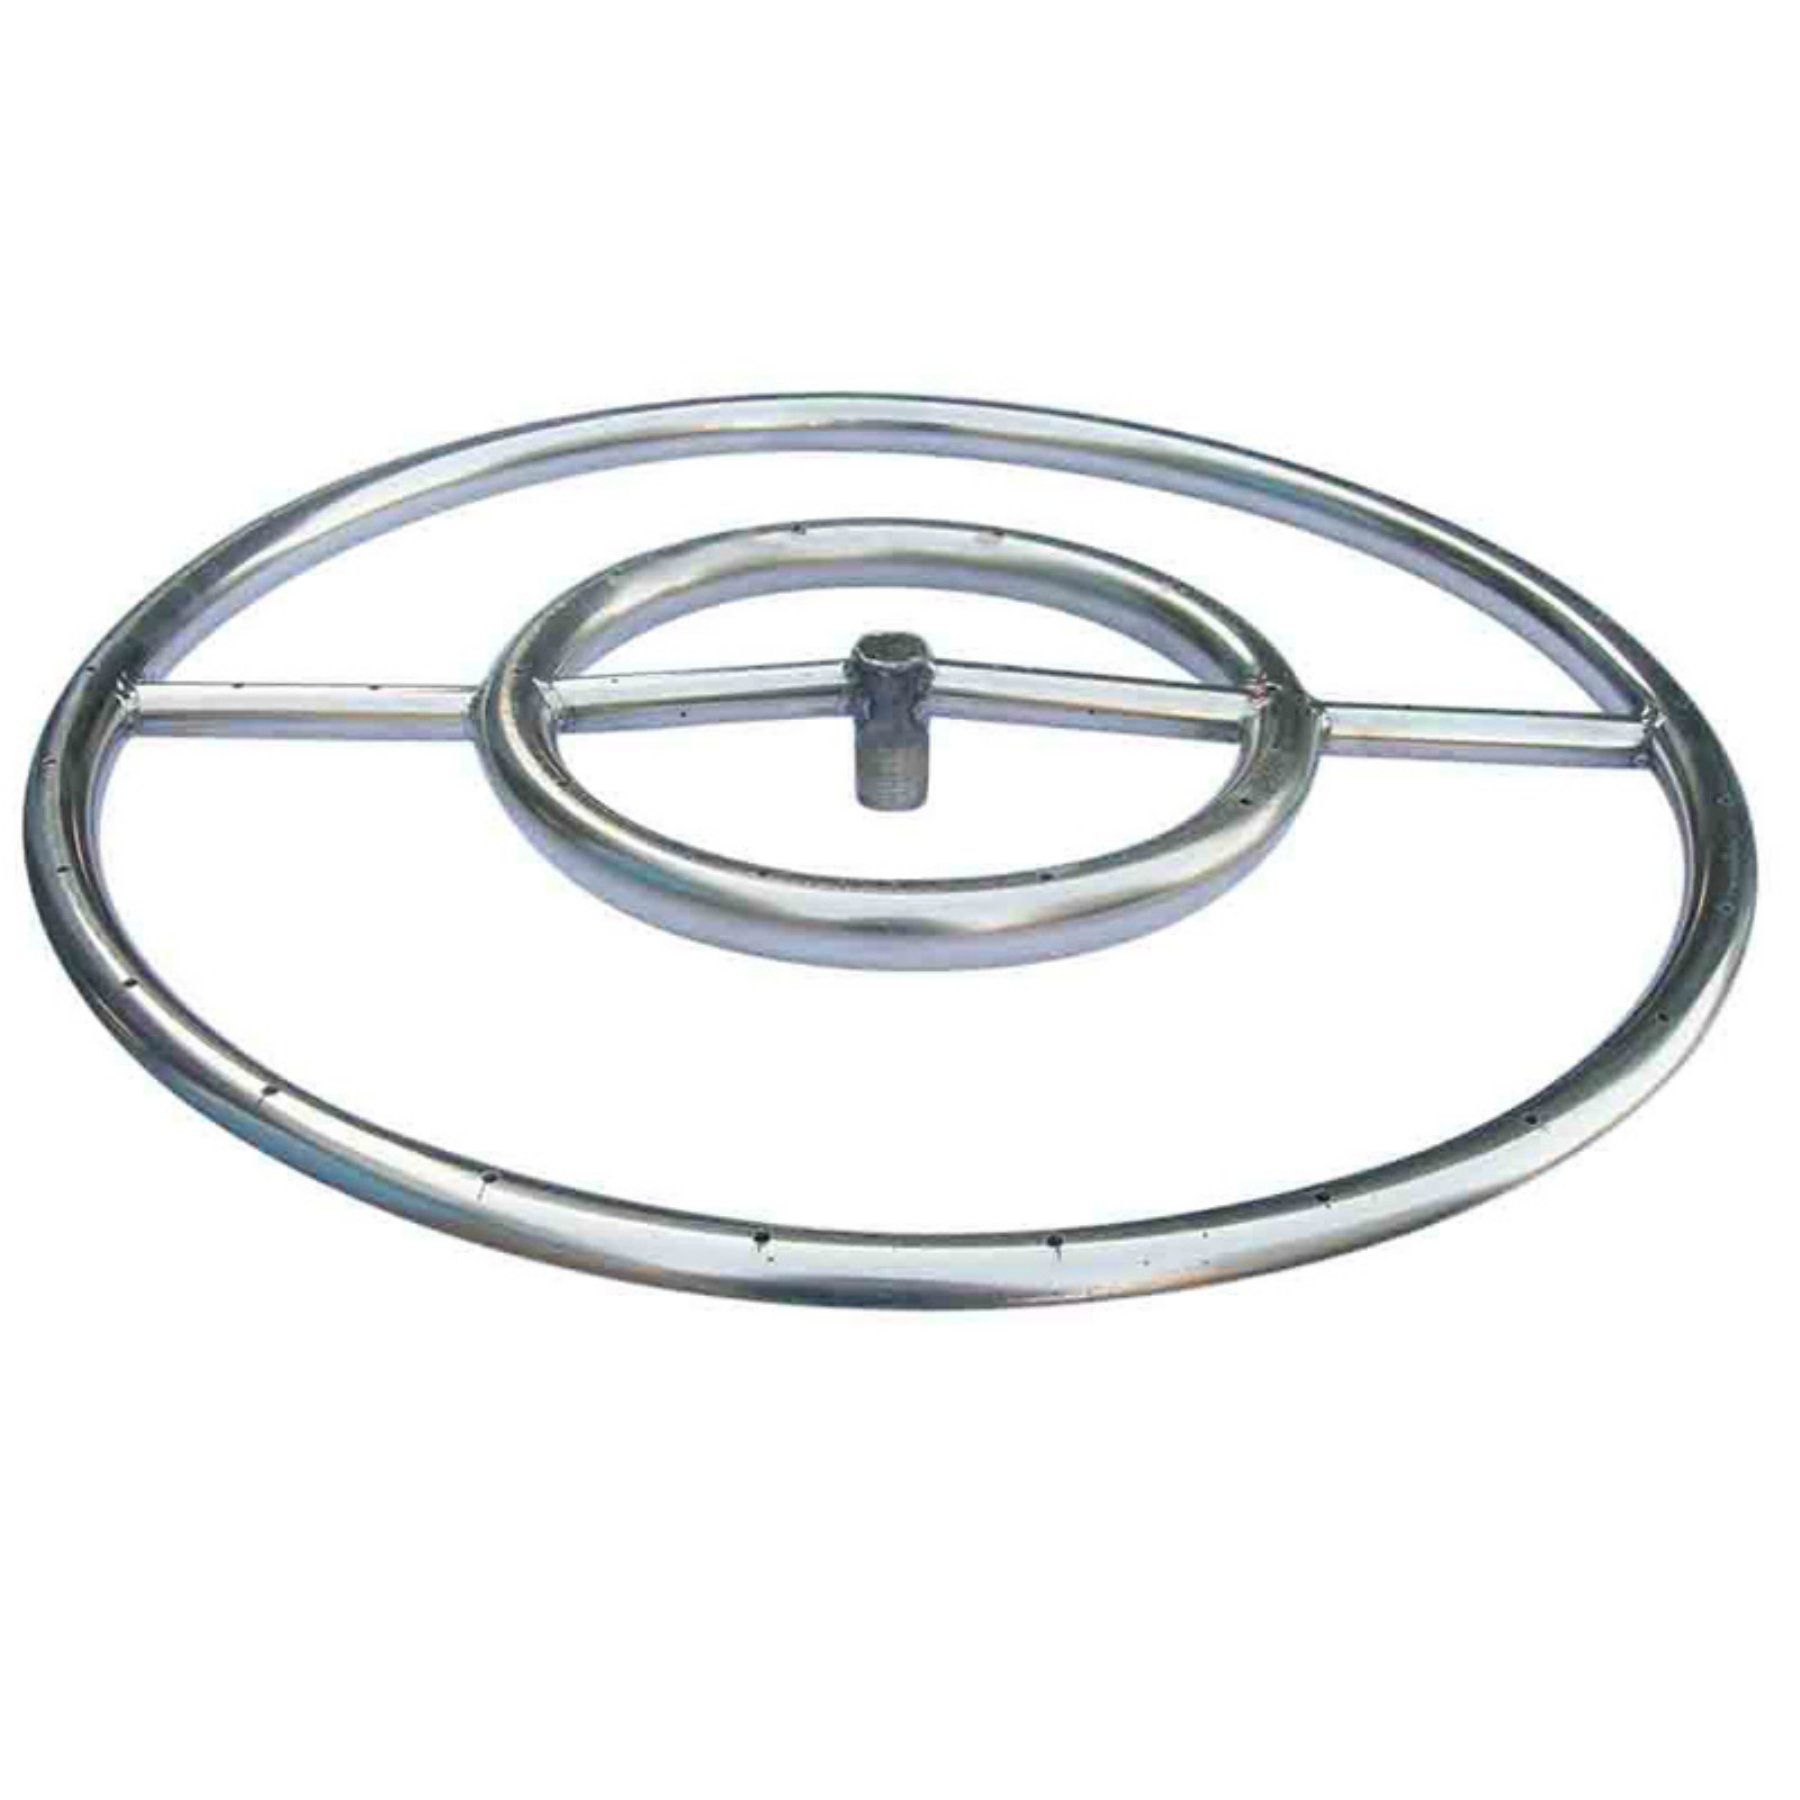 tretco 18 in stainless steel fire pit ring obrss 18r pinterest